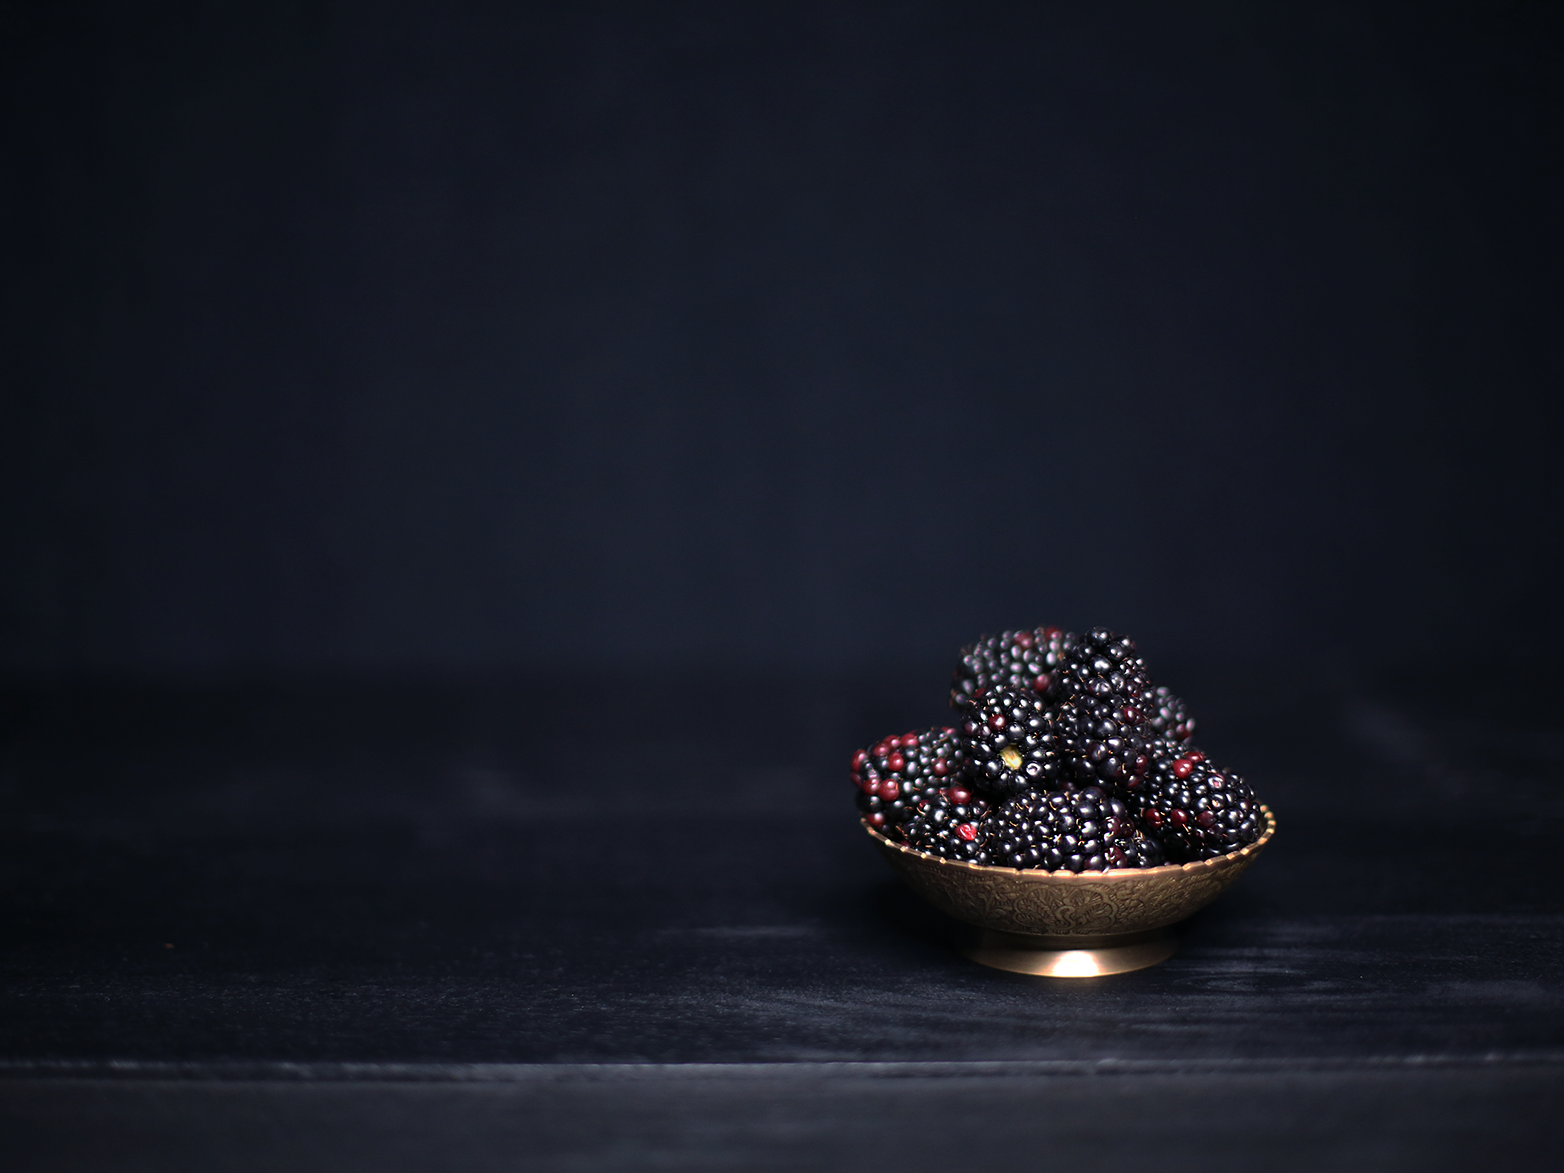 Blackberries food styling canon 50mm f1.4 food photography food and drink food color canon 5d mark iii adobe photoshop